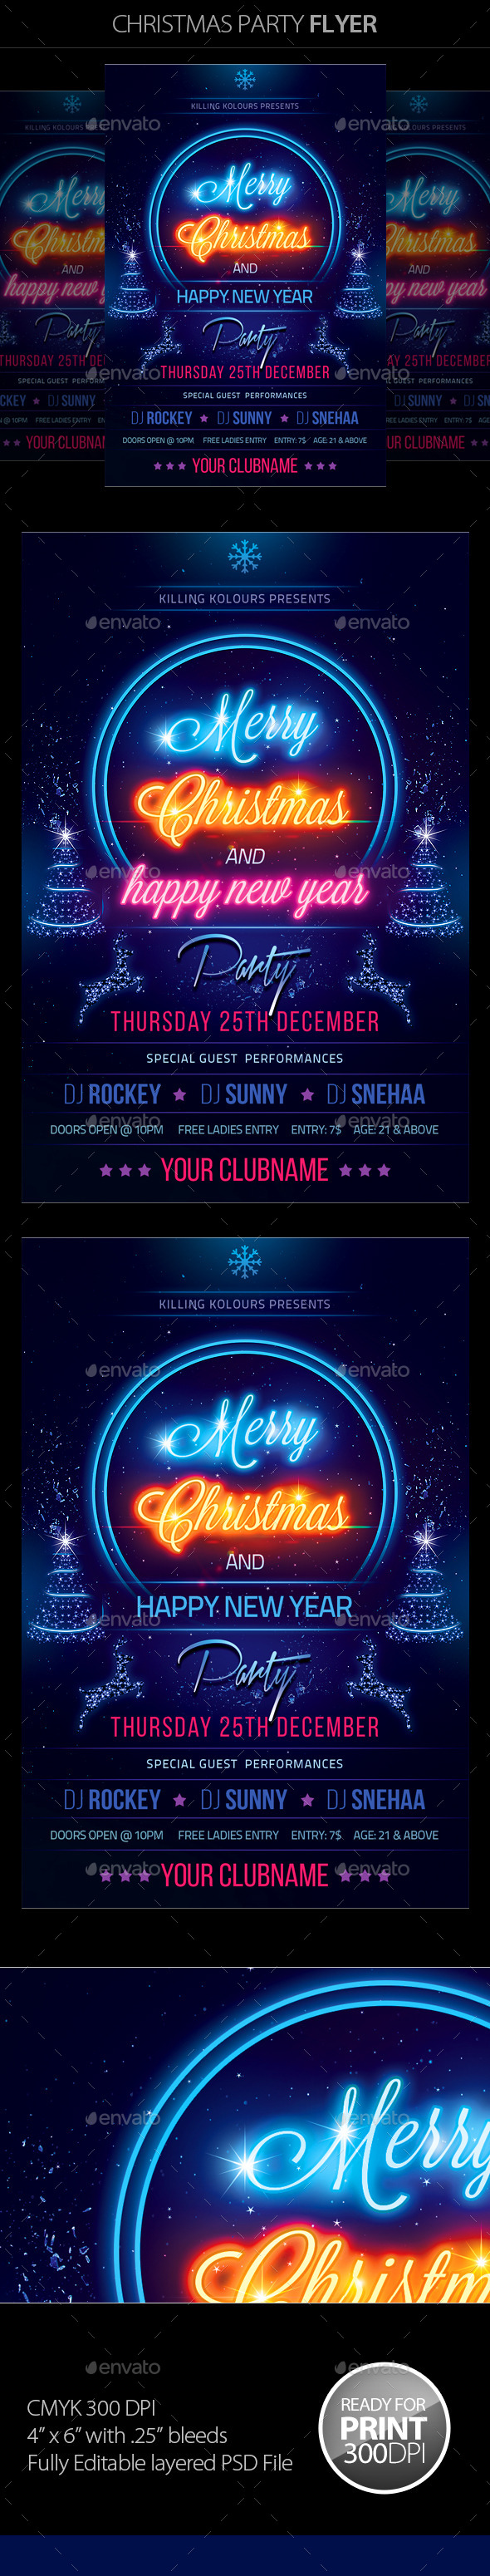 GraphicRiver Christmas Party Flyer 9367627